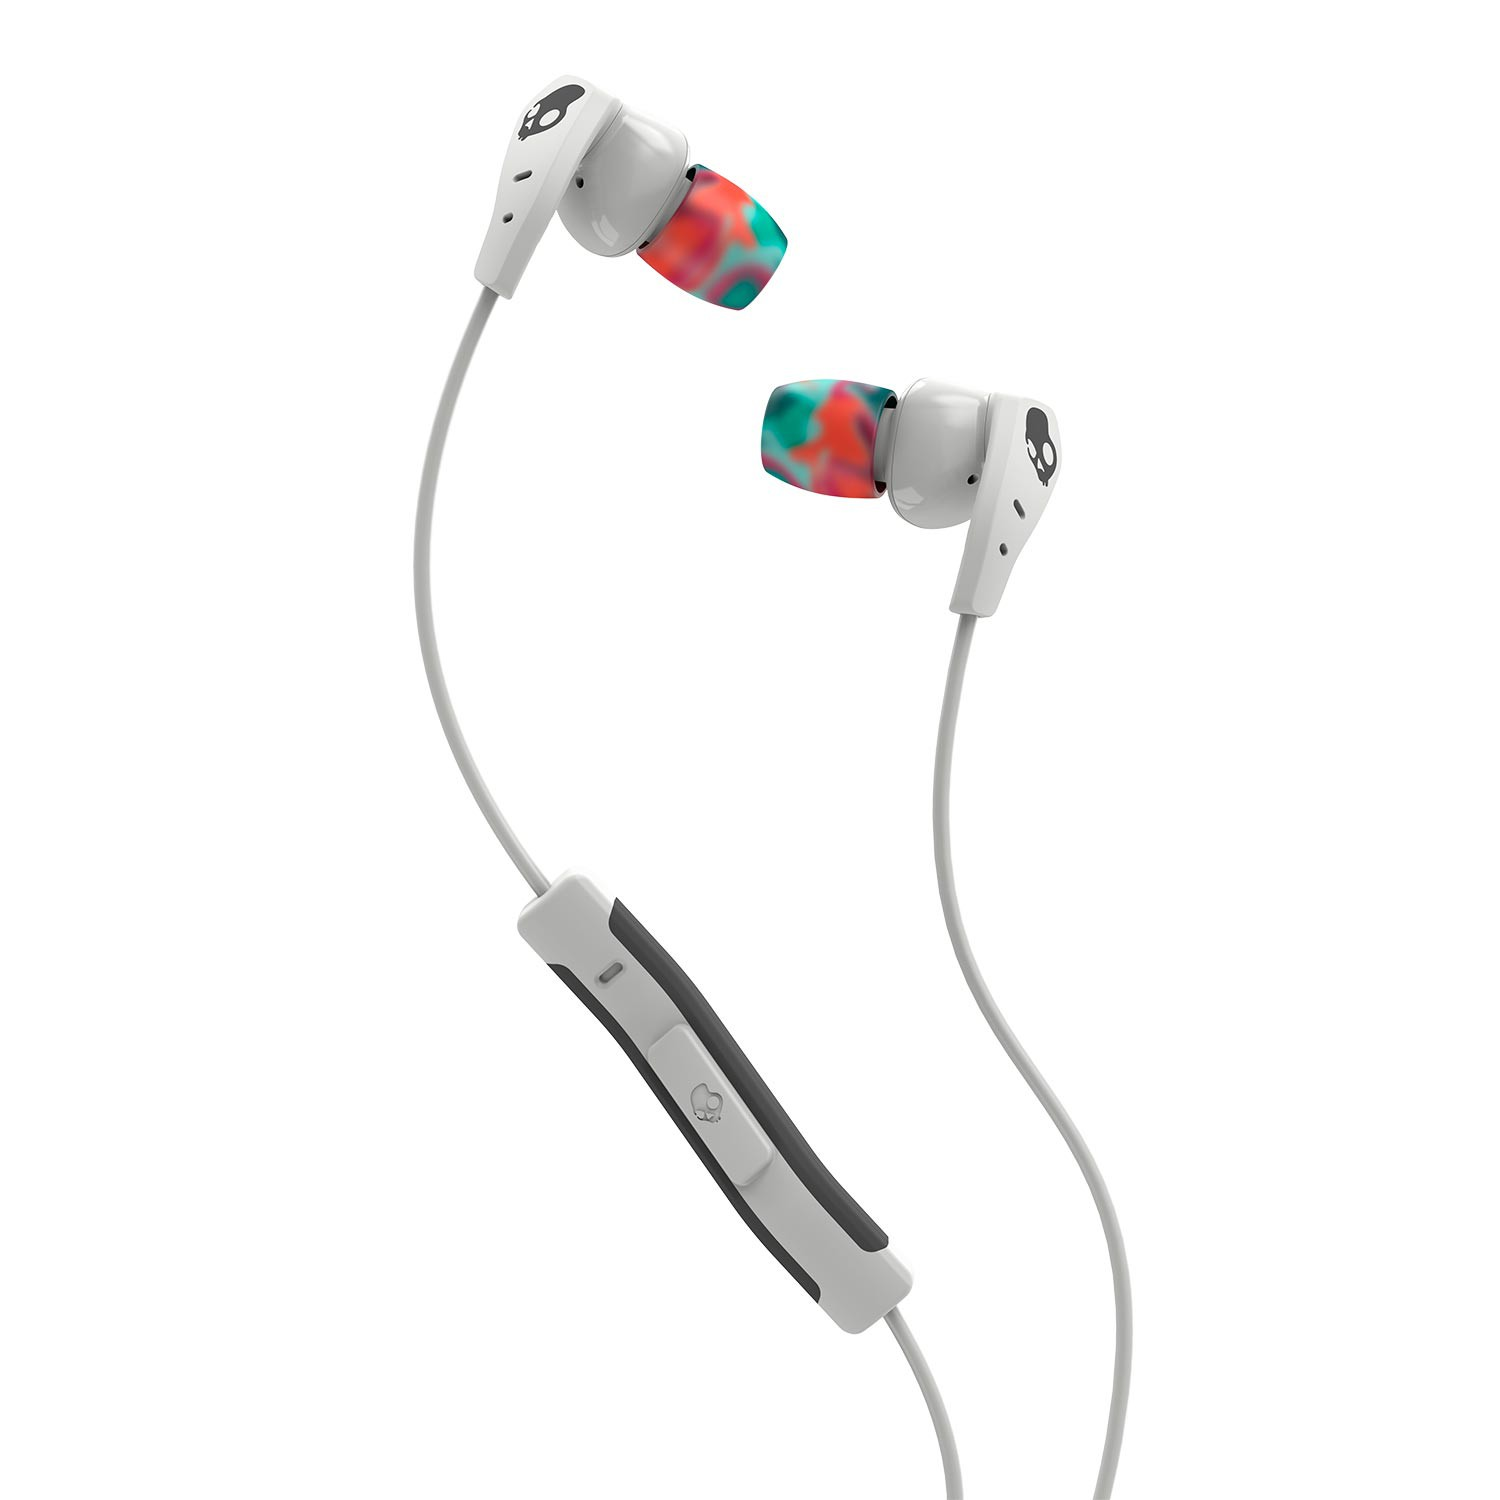 Sluchátka Skullcandy Method light grey